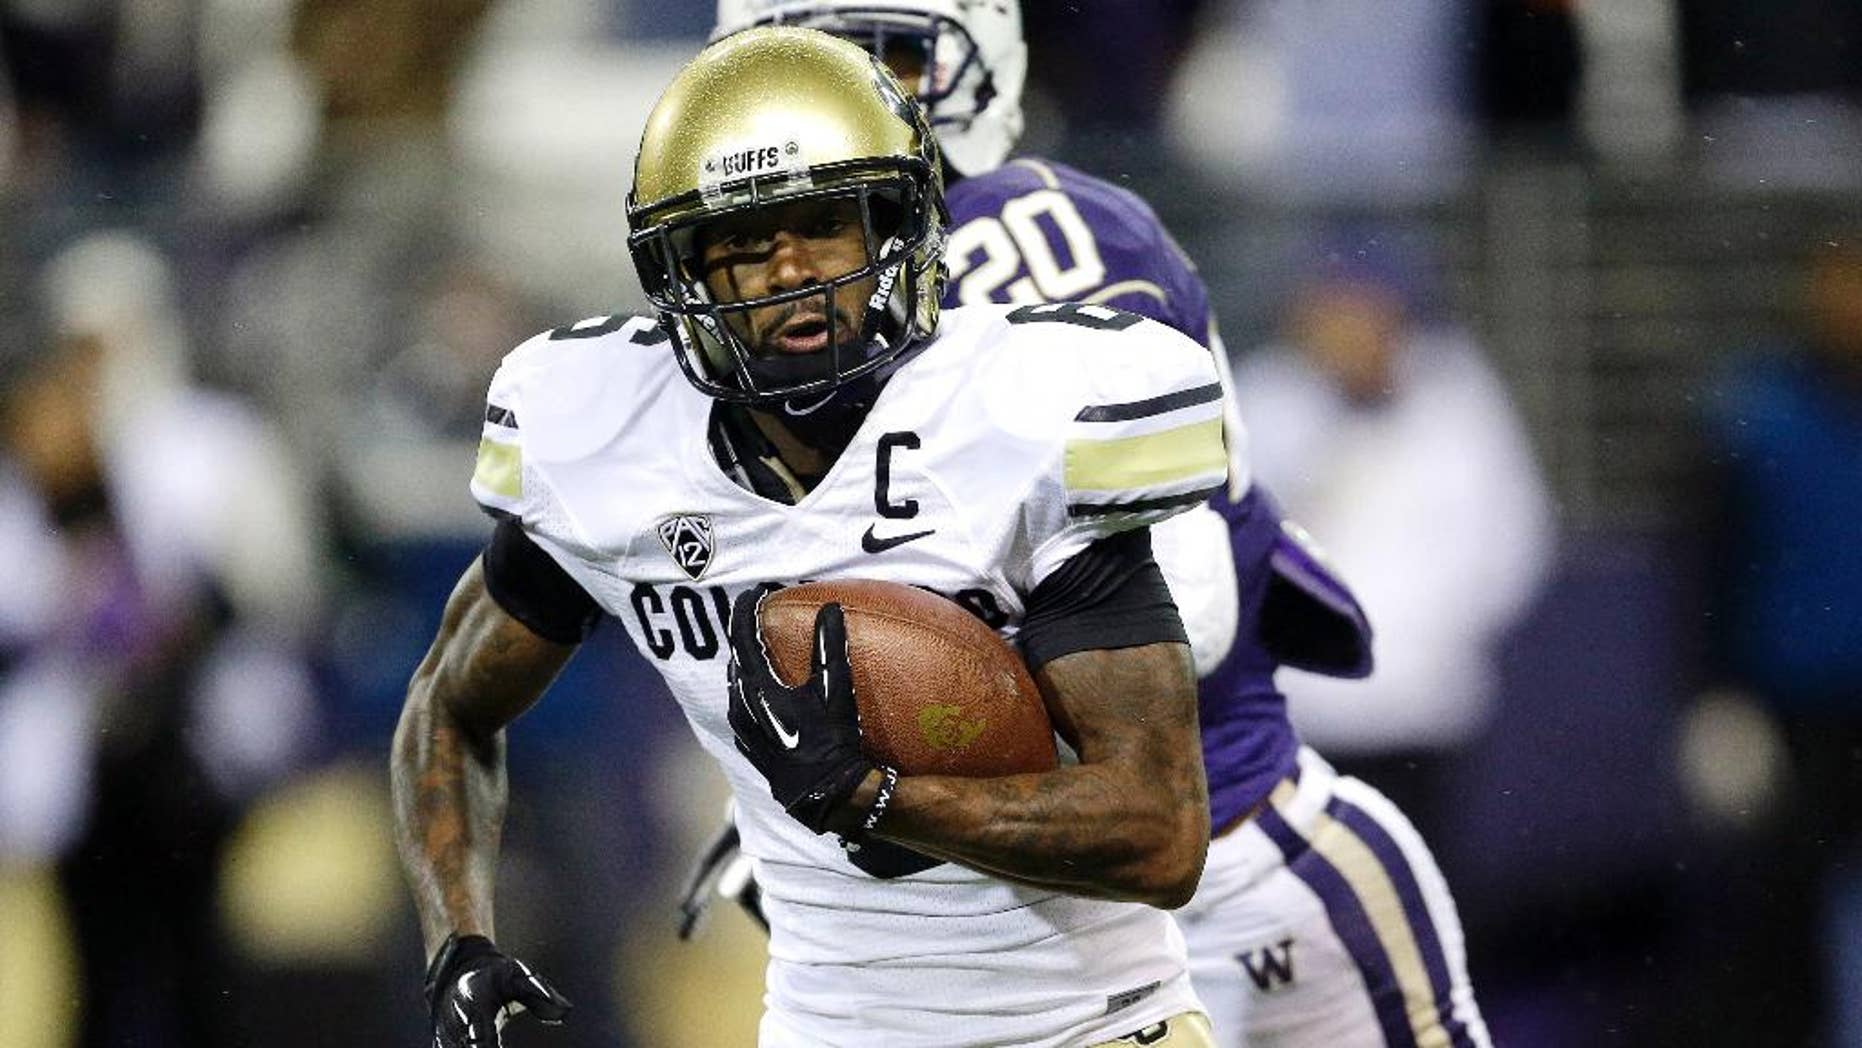 FILE - In this Nov. 9, 2013, file photo, Colorado's wide receiver Paul Richardson runs the ball for a touchdown after making a reception against Washington in the first half of an NCAA college football game in Seattle. The Seattle Seahawks picked Colorado wide receiver Richardson with the No. 45 overall pick in the second round of the NFL draft Friday, May 9, 2014. (AP Photo/Ted S. Warren, File)